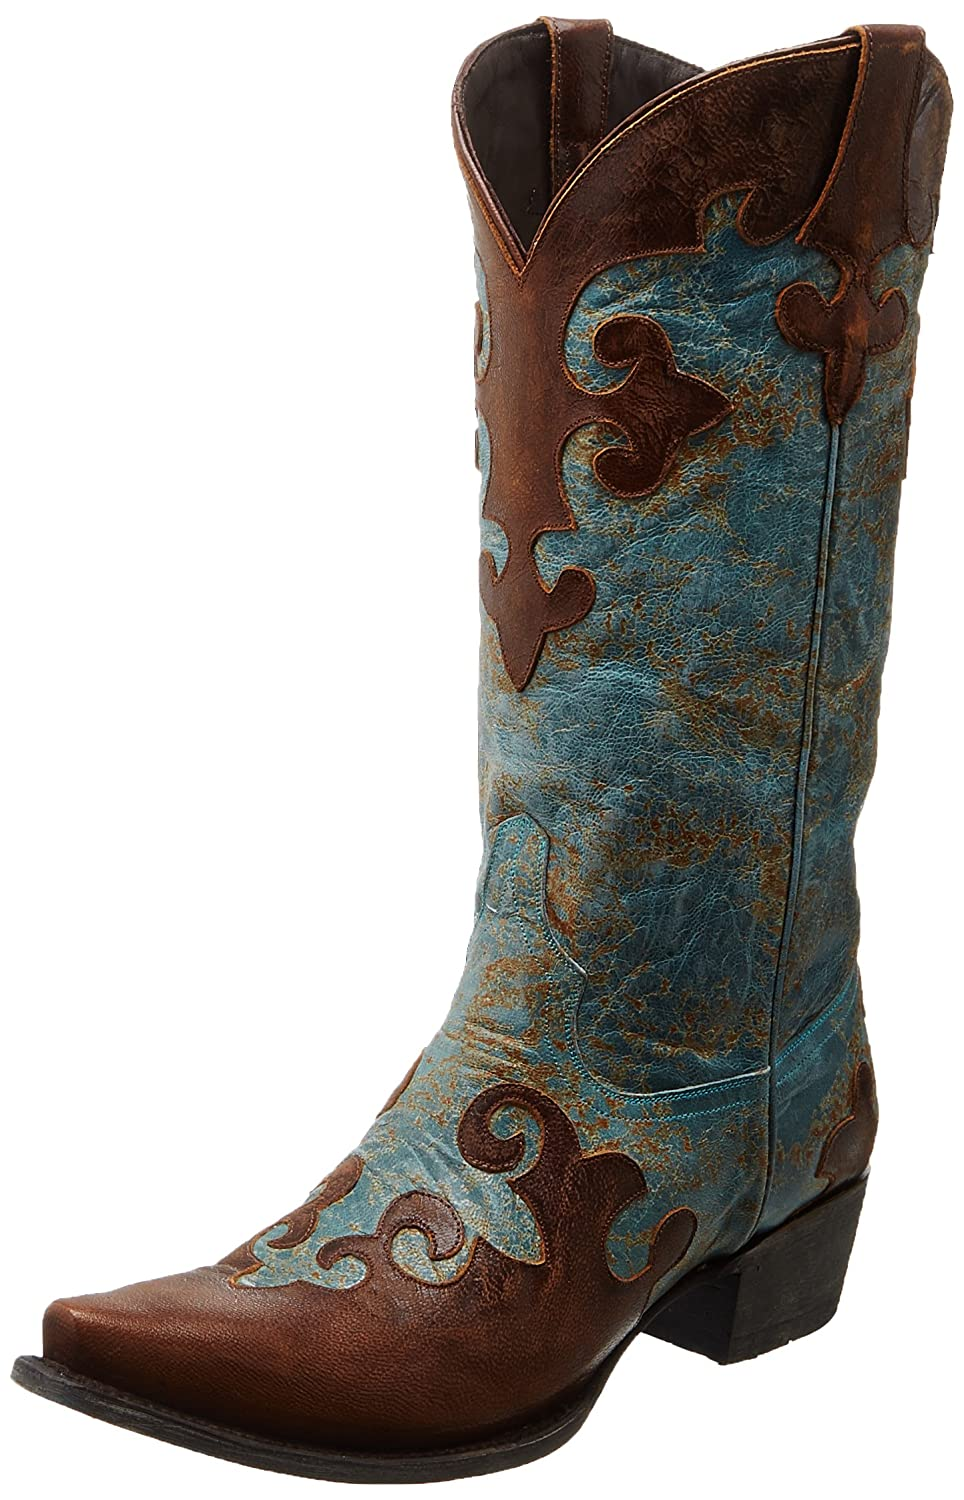 Lane Boots Women's Dawson Western Boot B007XXYIKA 6.5 B(M) US|Turquoise/Brown